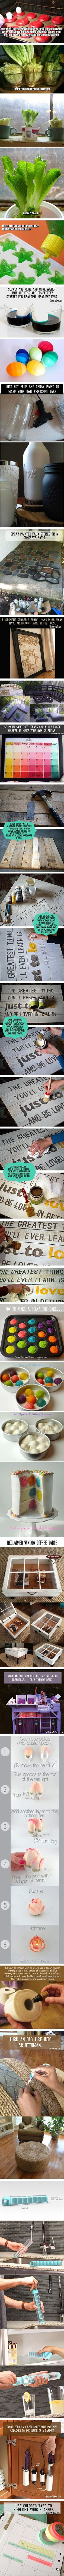 OMG LOVE THESE!!! 43 Amazingly simple but genius ideas to use and reuse stuff | eHow